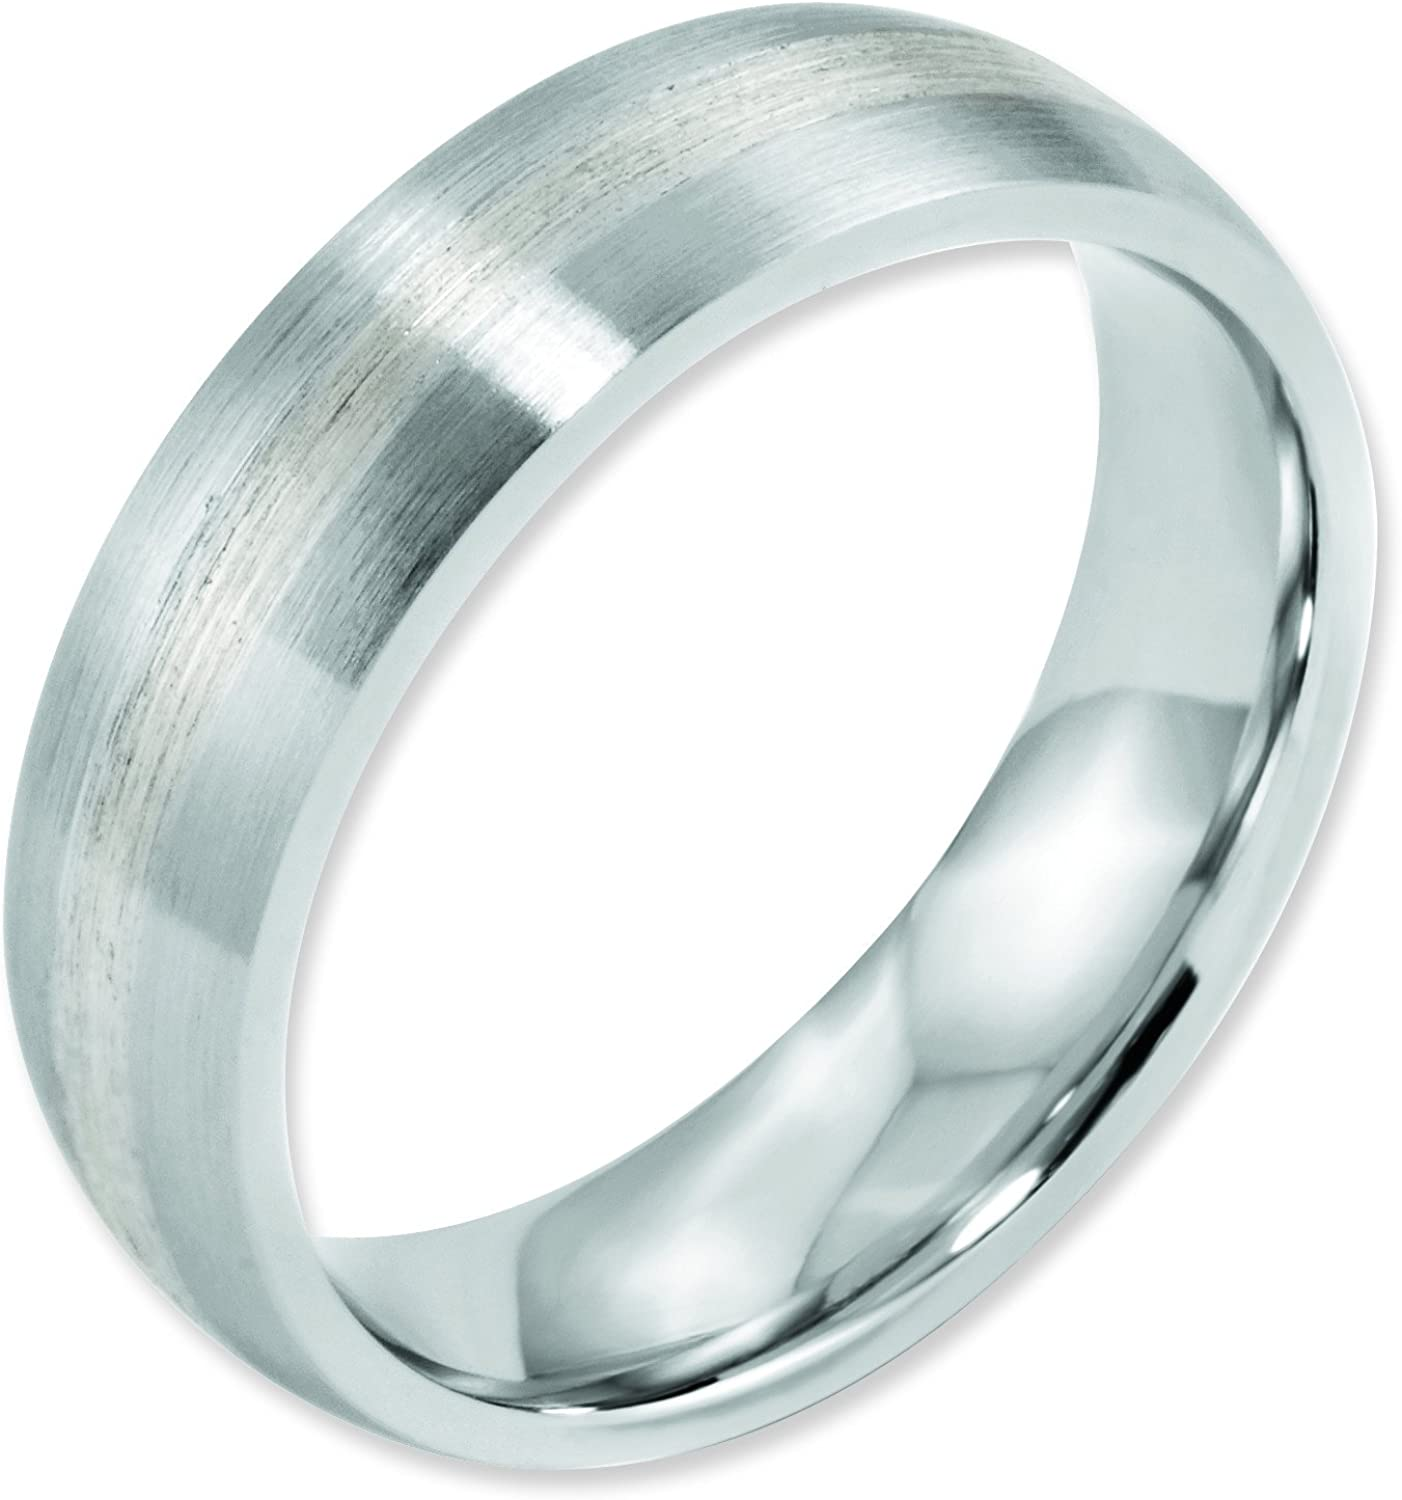 Cobalt Chromium Sterling Silver Inlay Satin 6mm Band